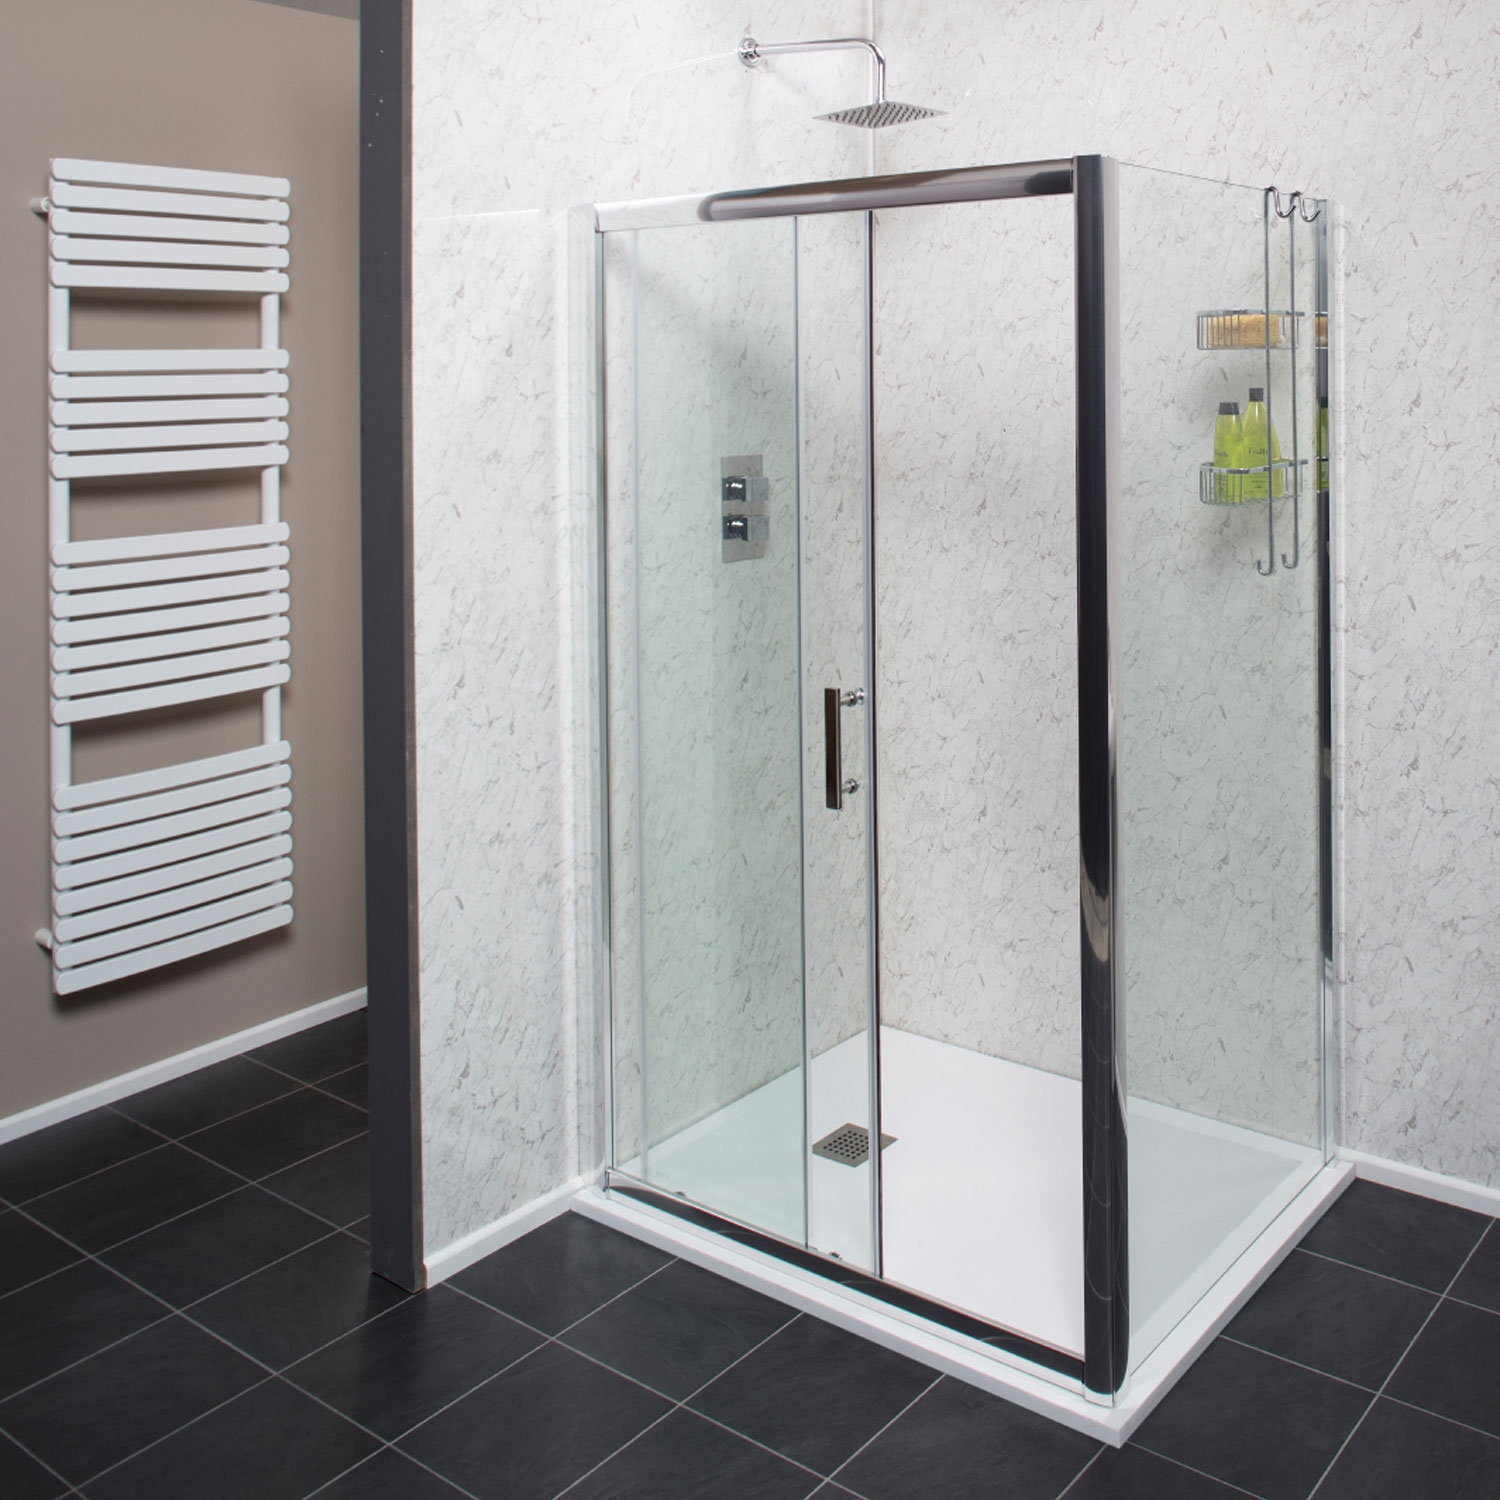 Cali Cass Six Sliding Shower Door 1000mm Wide - 6mm Glass